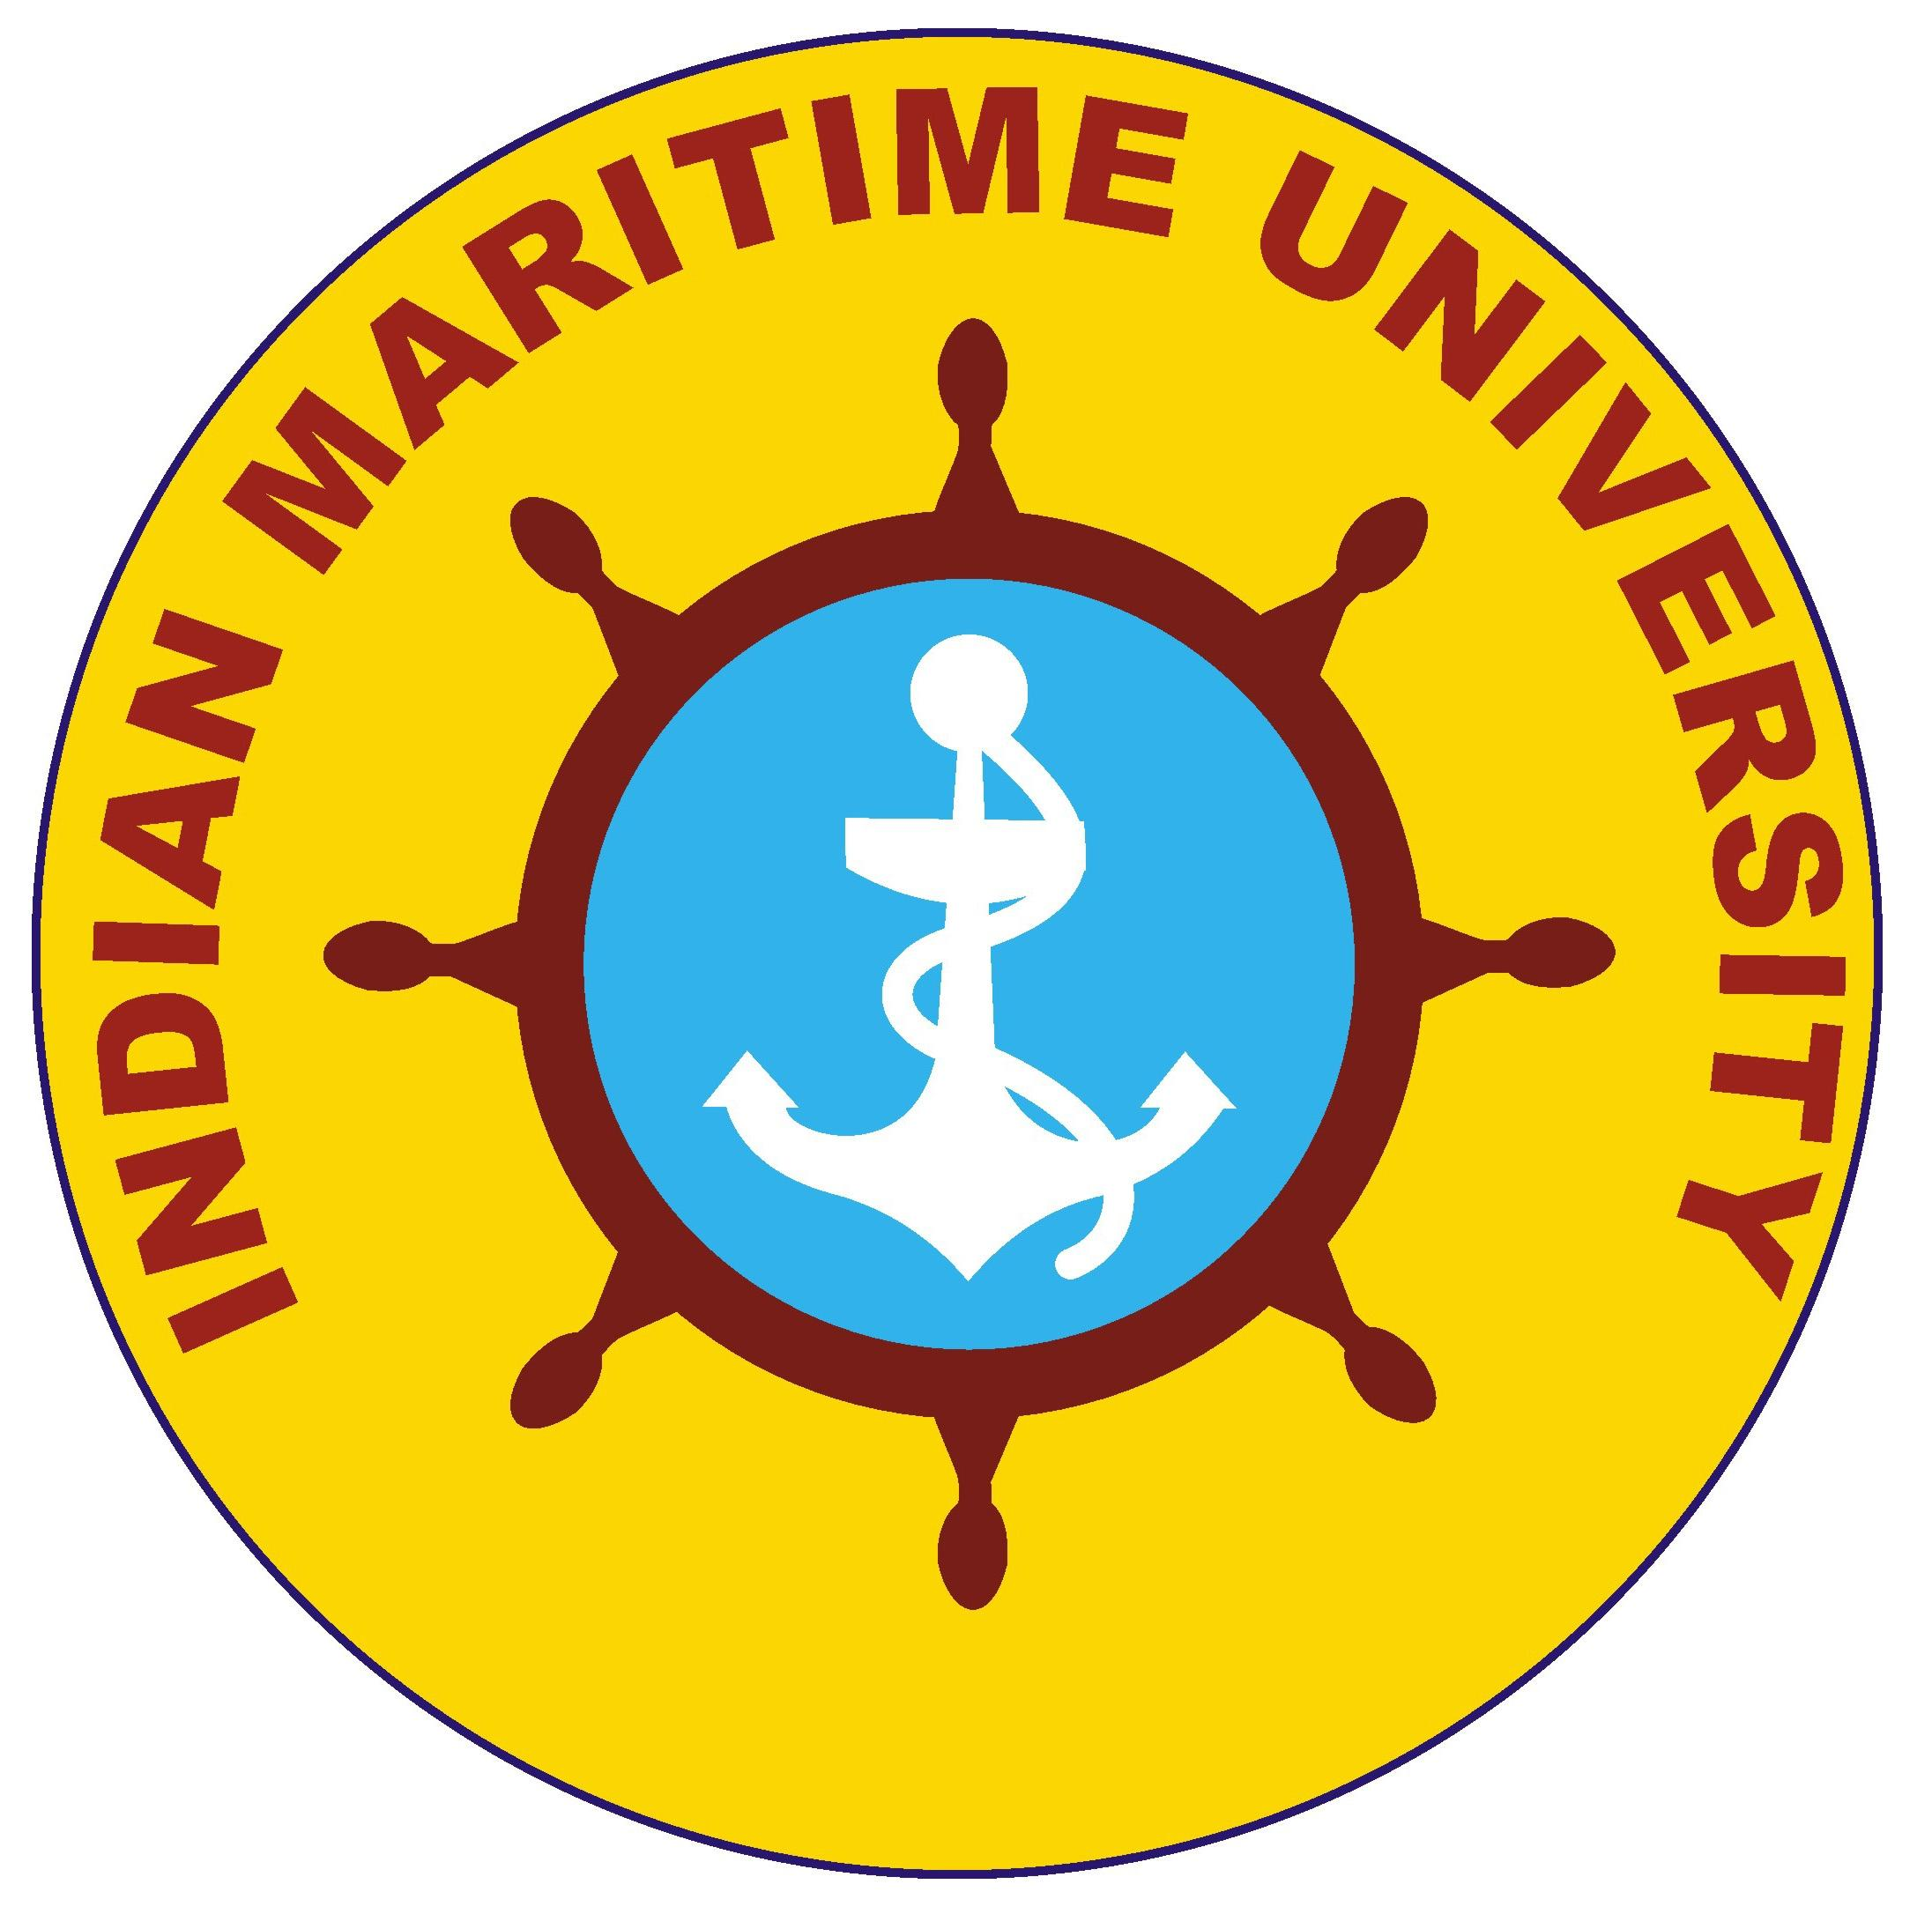 PGD Marine Engineering Admission 2014-15, Indian Maritime University (IMU)